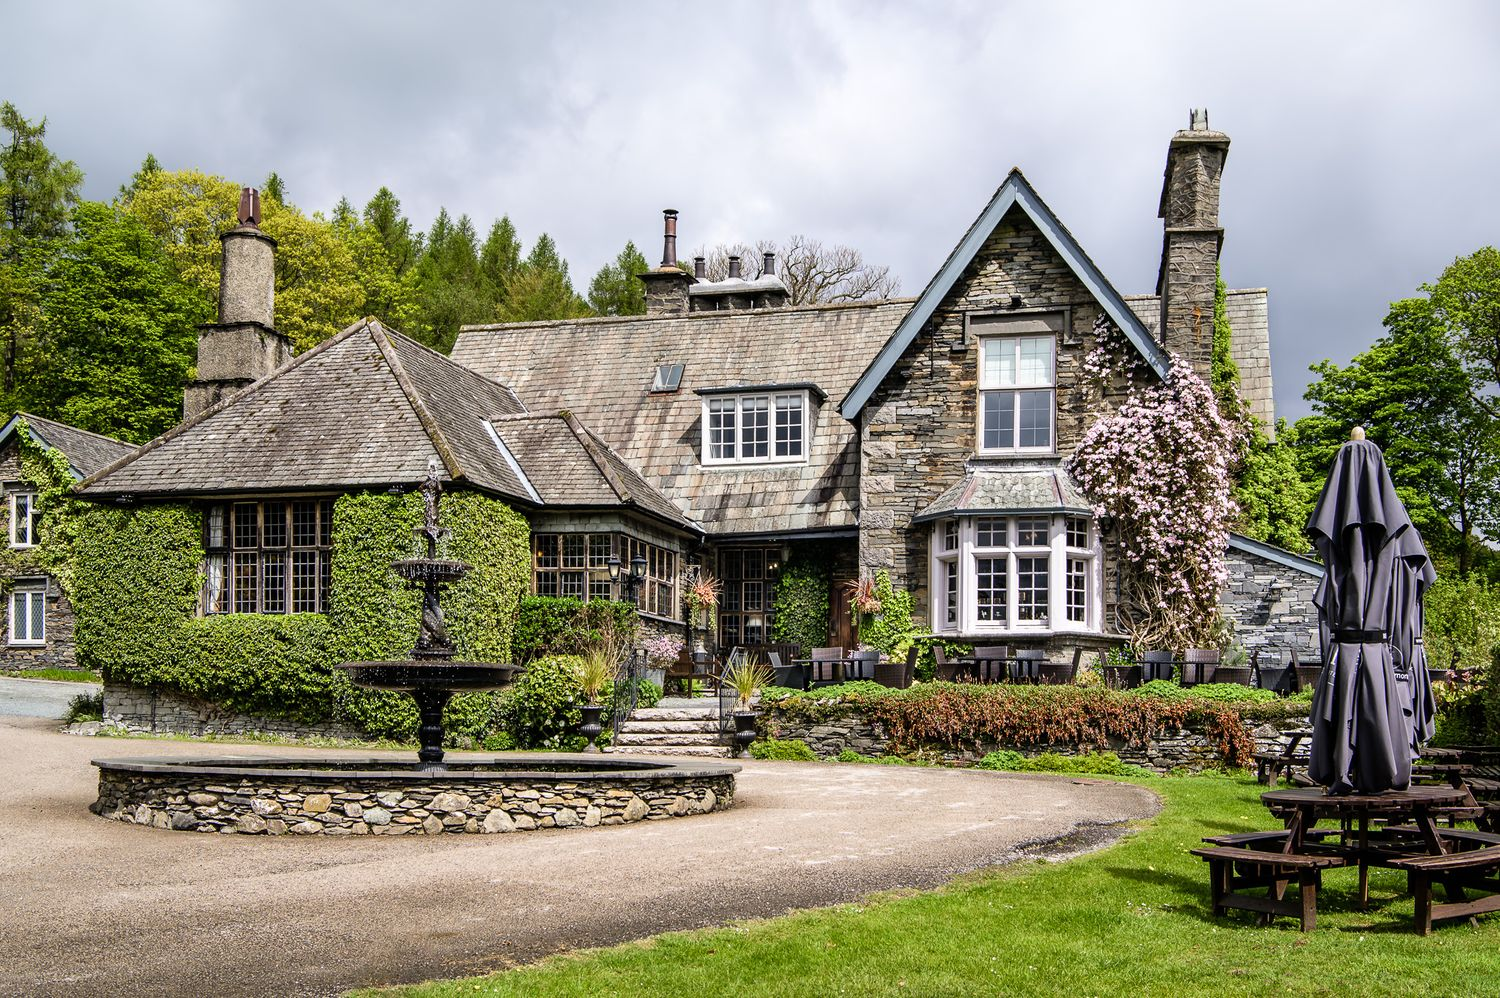 Broadoaks Country House Hotel in the Lake District near Windermere